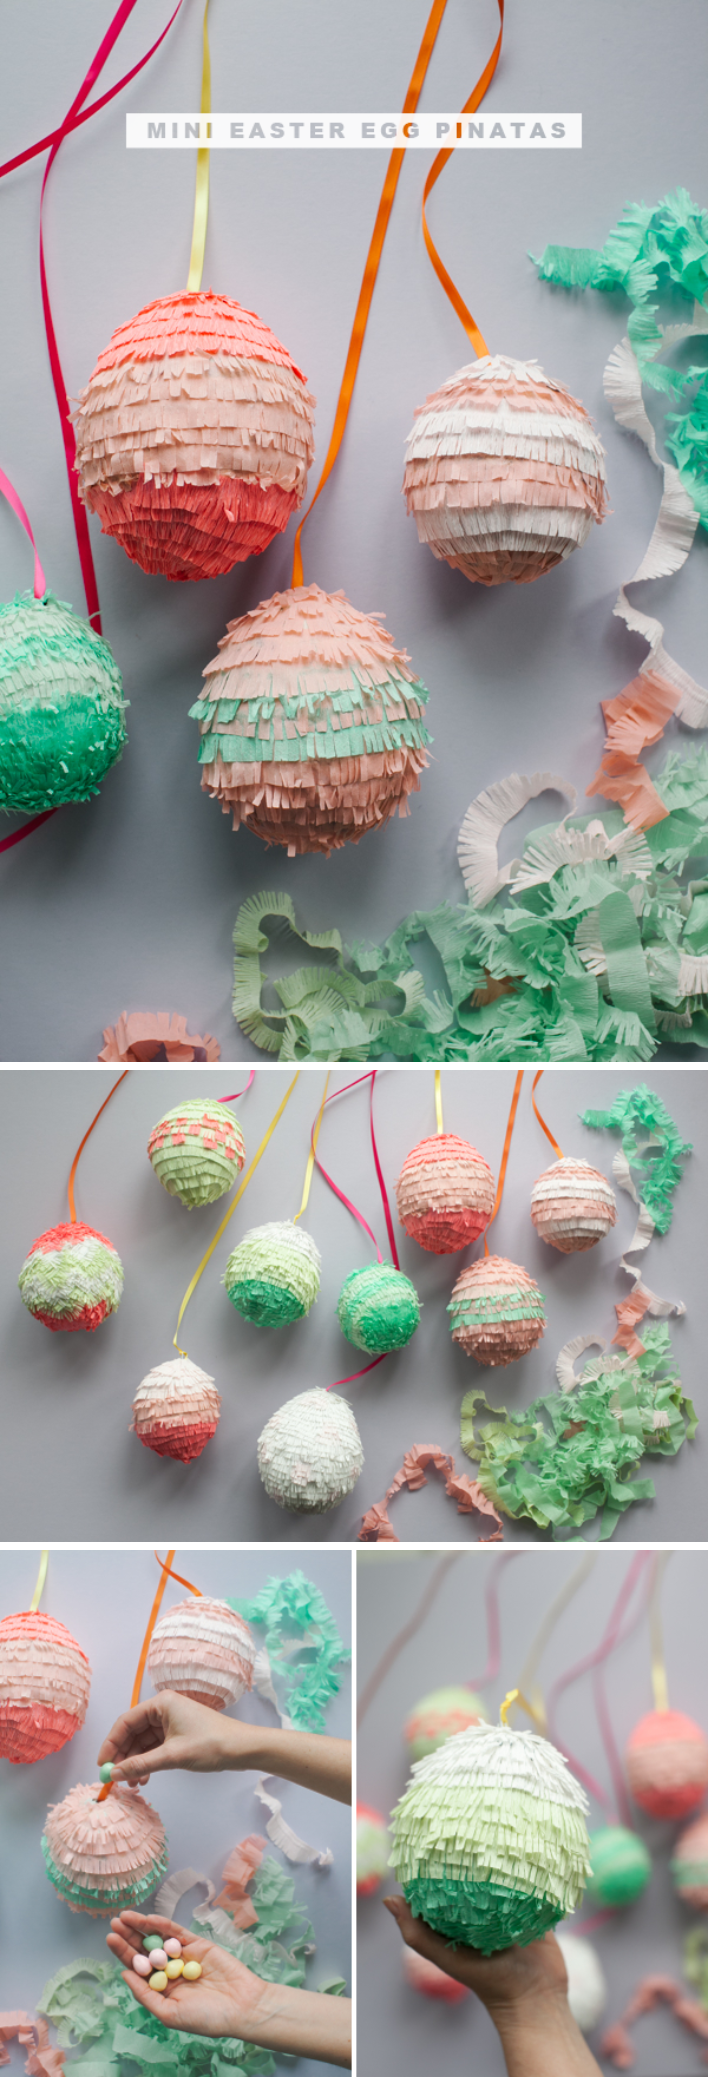 DIY Easter Egg Pinatas.